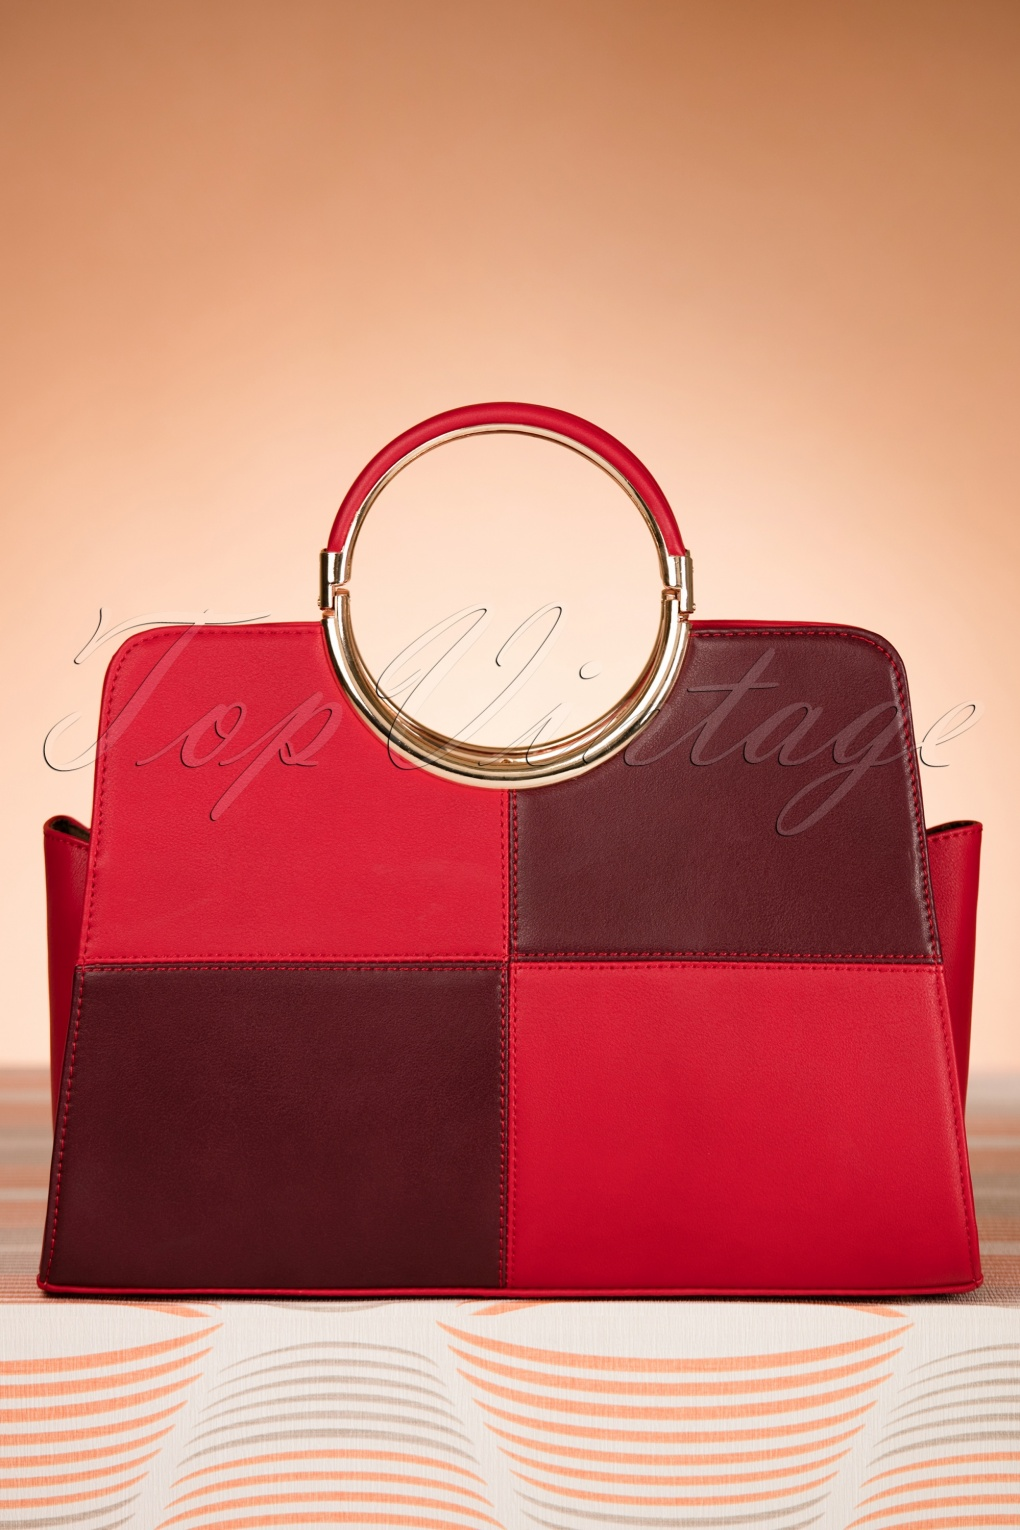 Retro Handbags, Purses, Wallets, Bags 60s Pia Top Handle Handbag in Red and Aubergine £38.18 AT vintagedancer.com